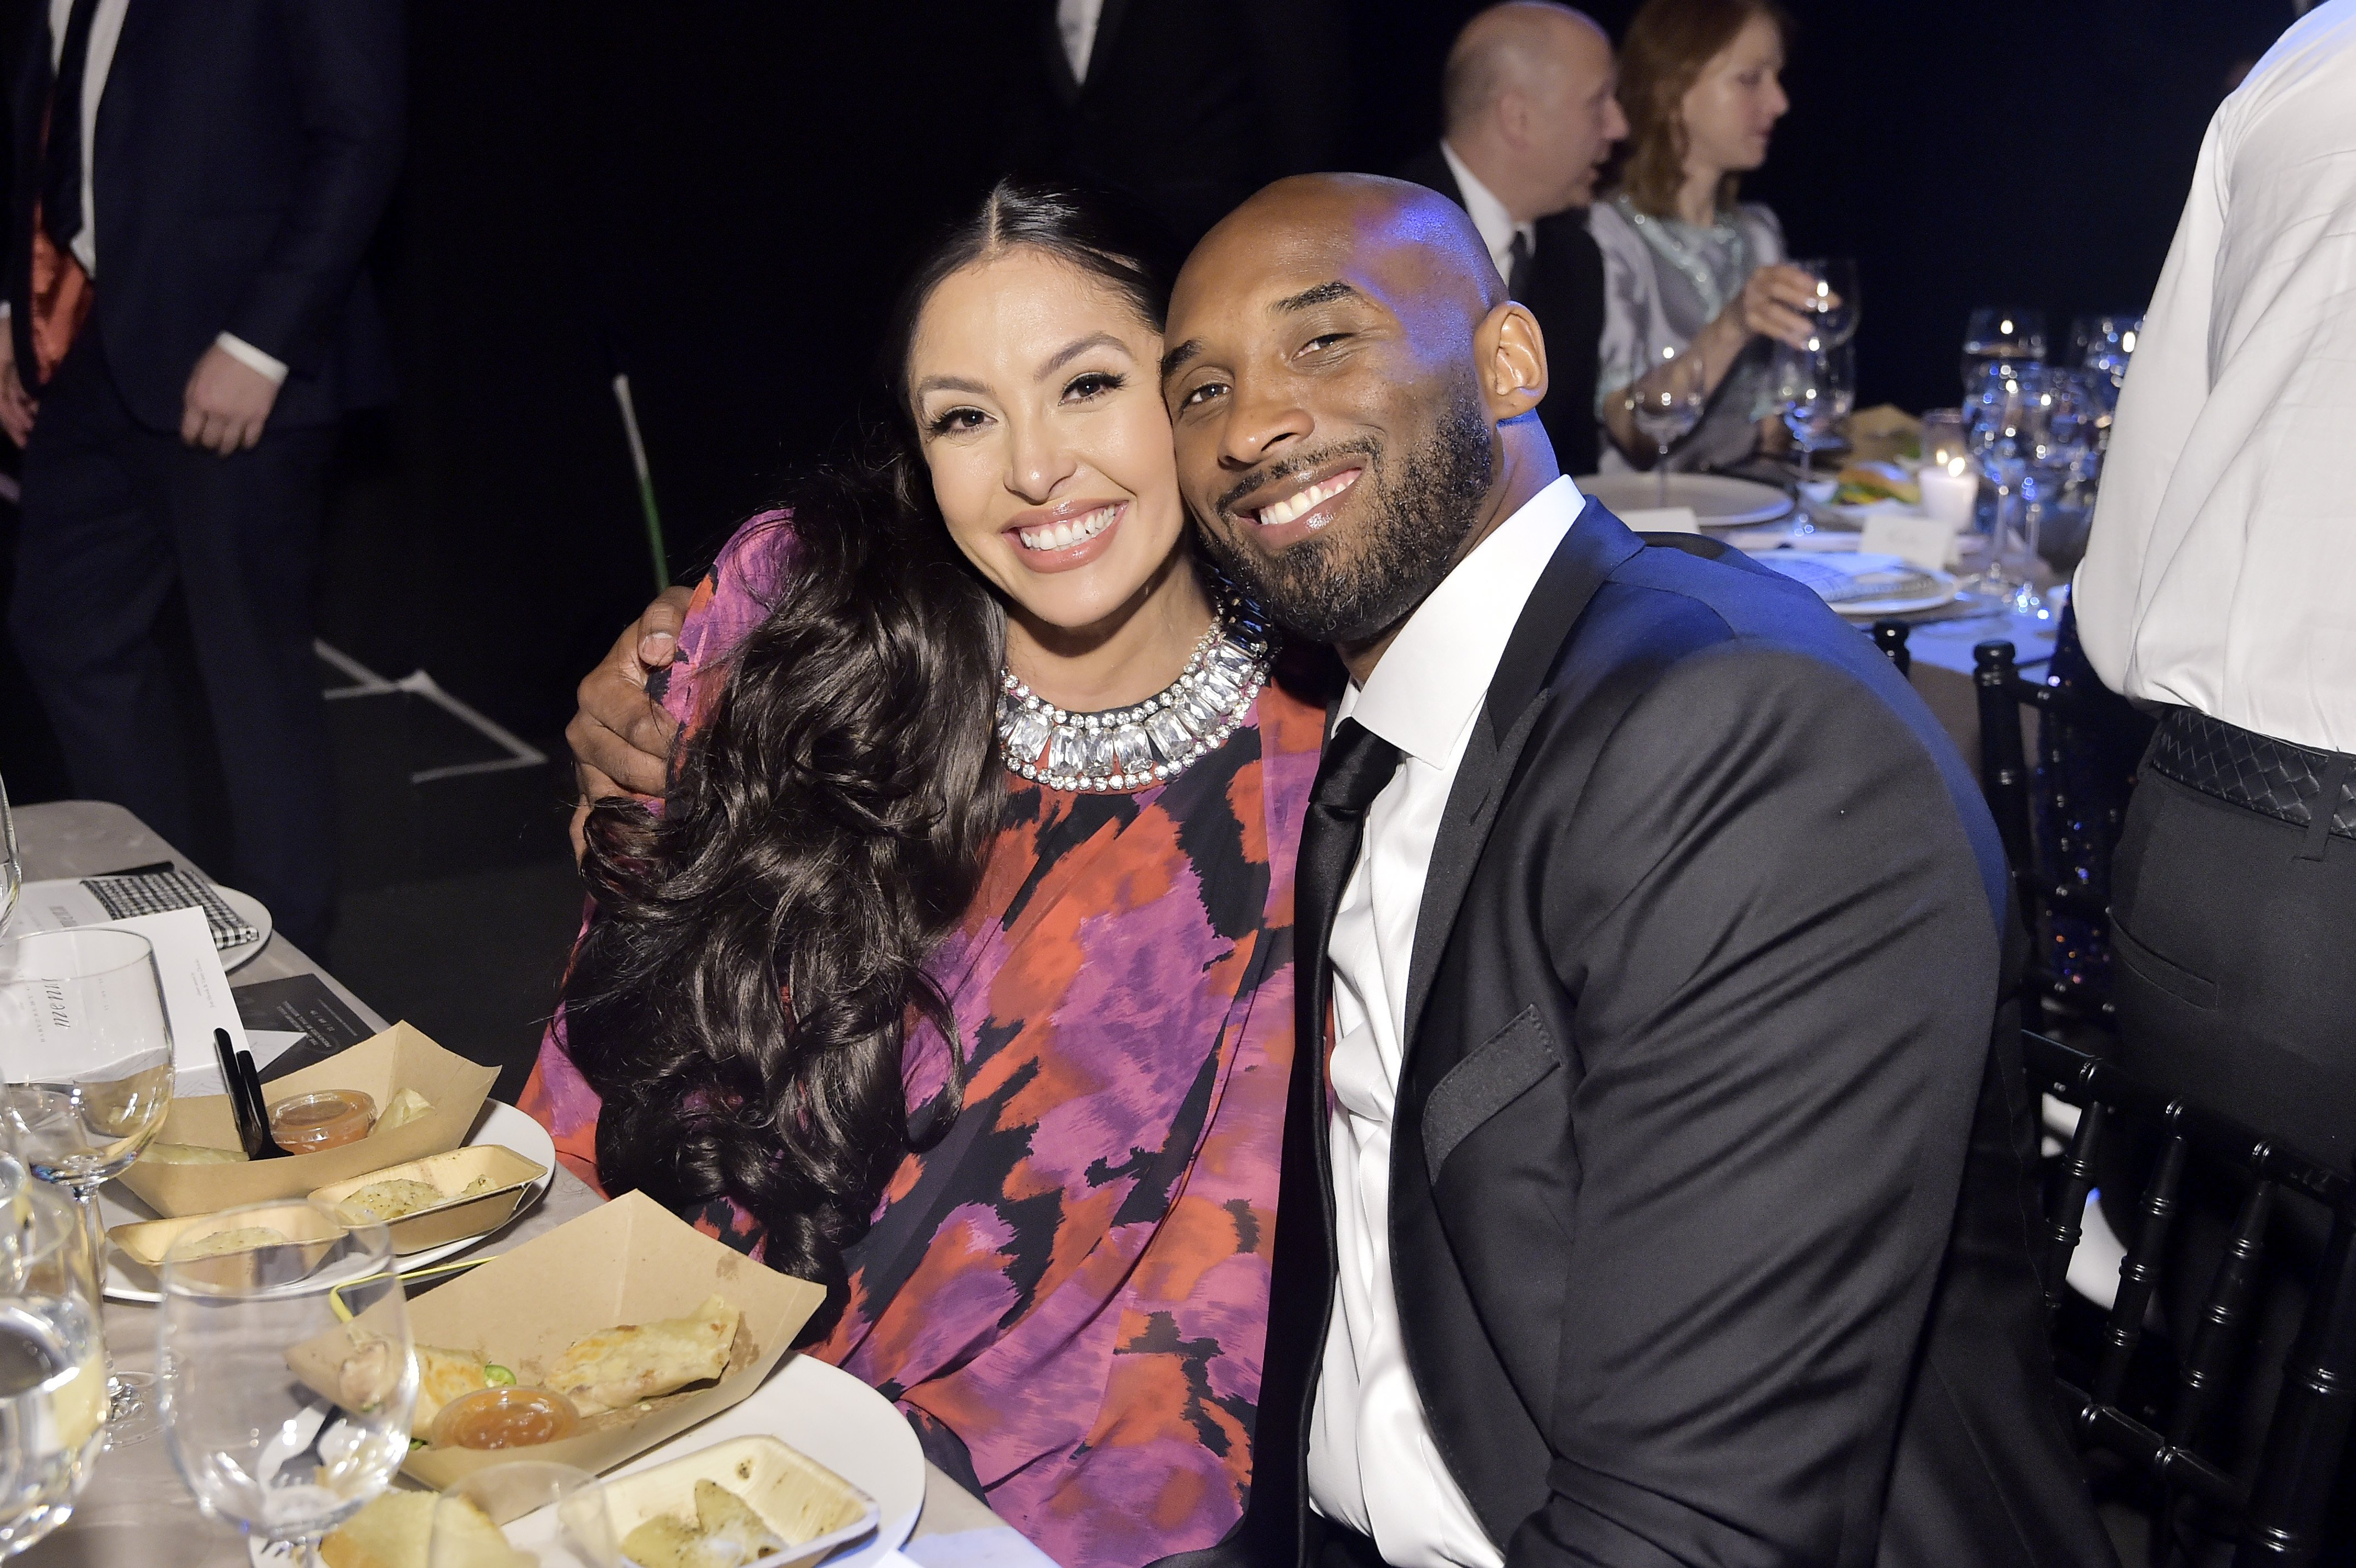 Vanessa Laine Bryant and Kobe Bryant at the 2019 Baby2Baby Gala presented by Paul Mitchell in Los Angeles, California | Photo: Stefanie Keenan/Getty Images for Baby2Baby